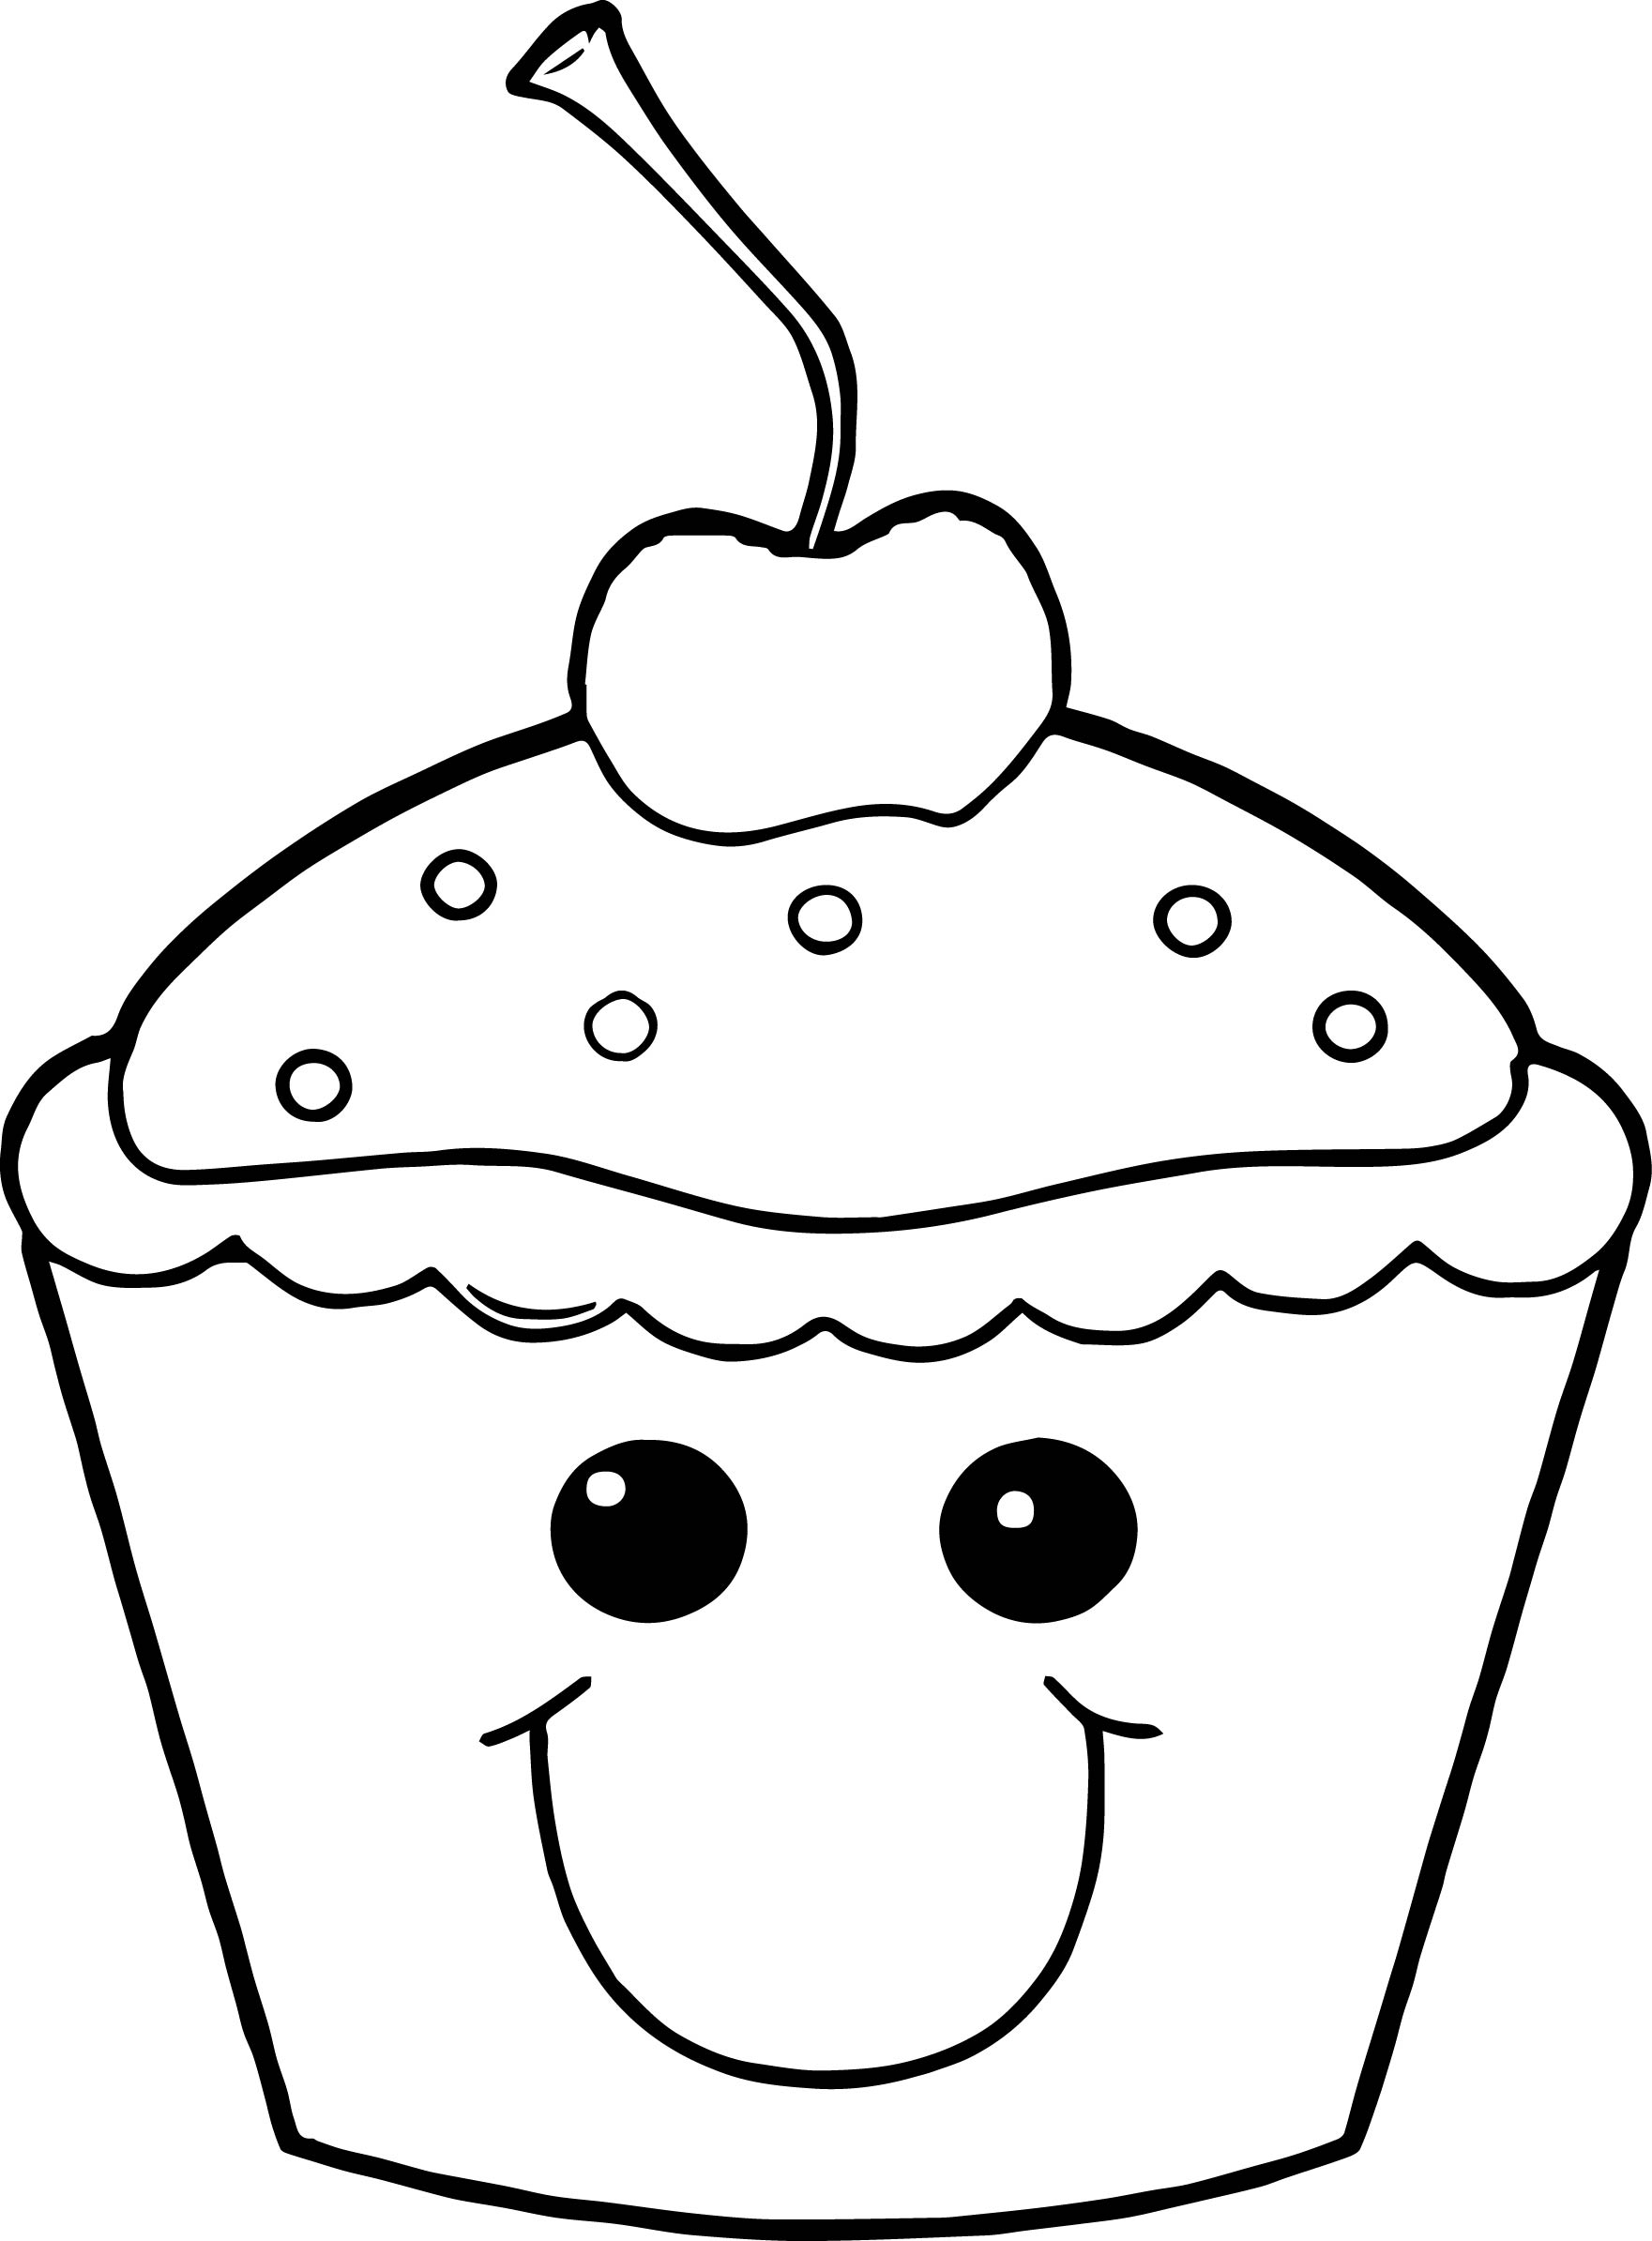 easy cupcake coloring pages free printable cupcake coloring pages for kids cool2bkids coloring easy cupcake pages